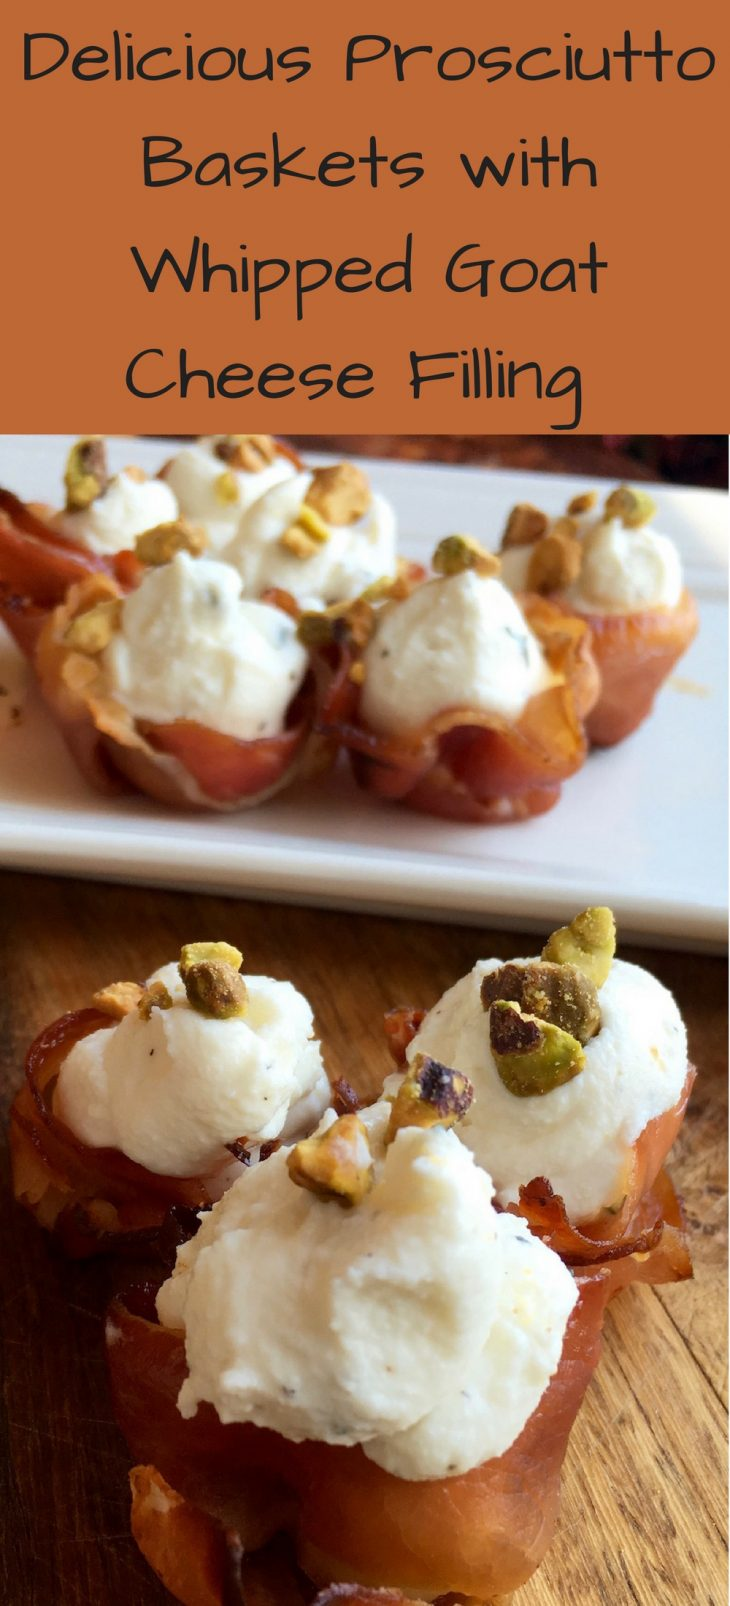 Prosciutto Baskets with Whipped Goat Cheese Filling